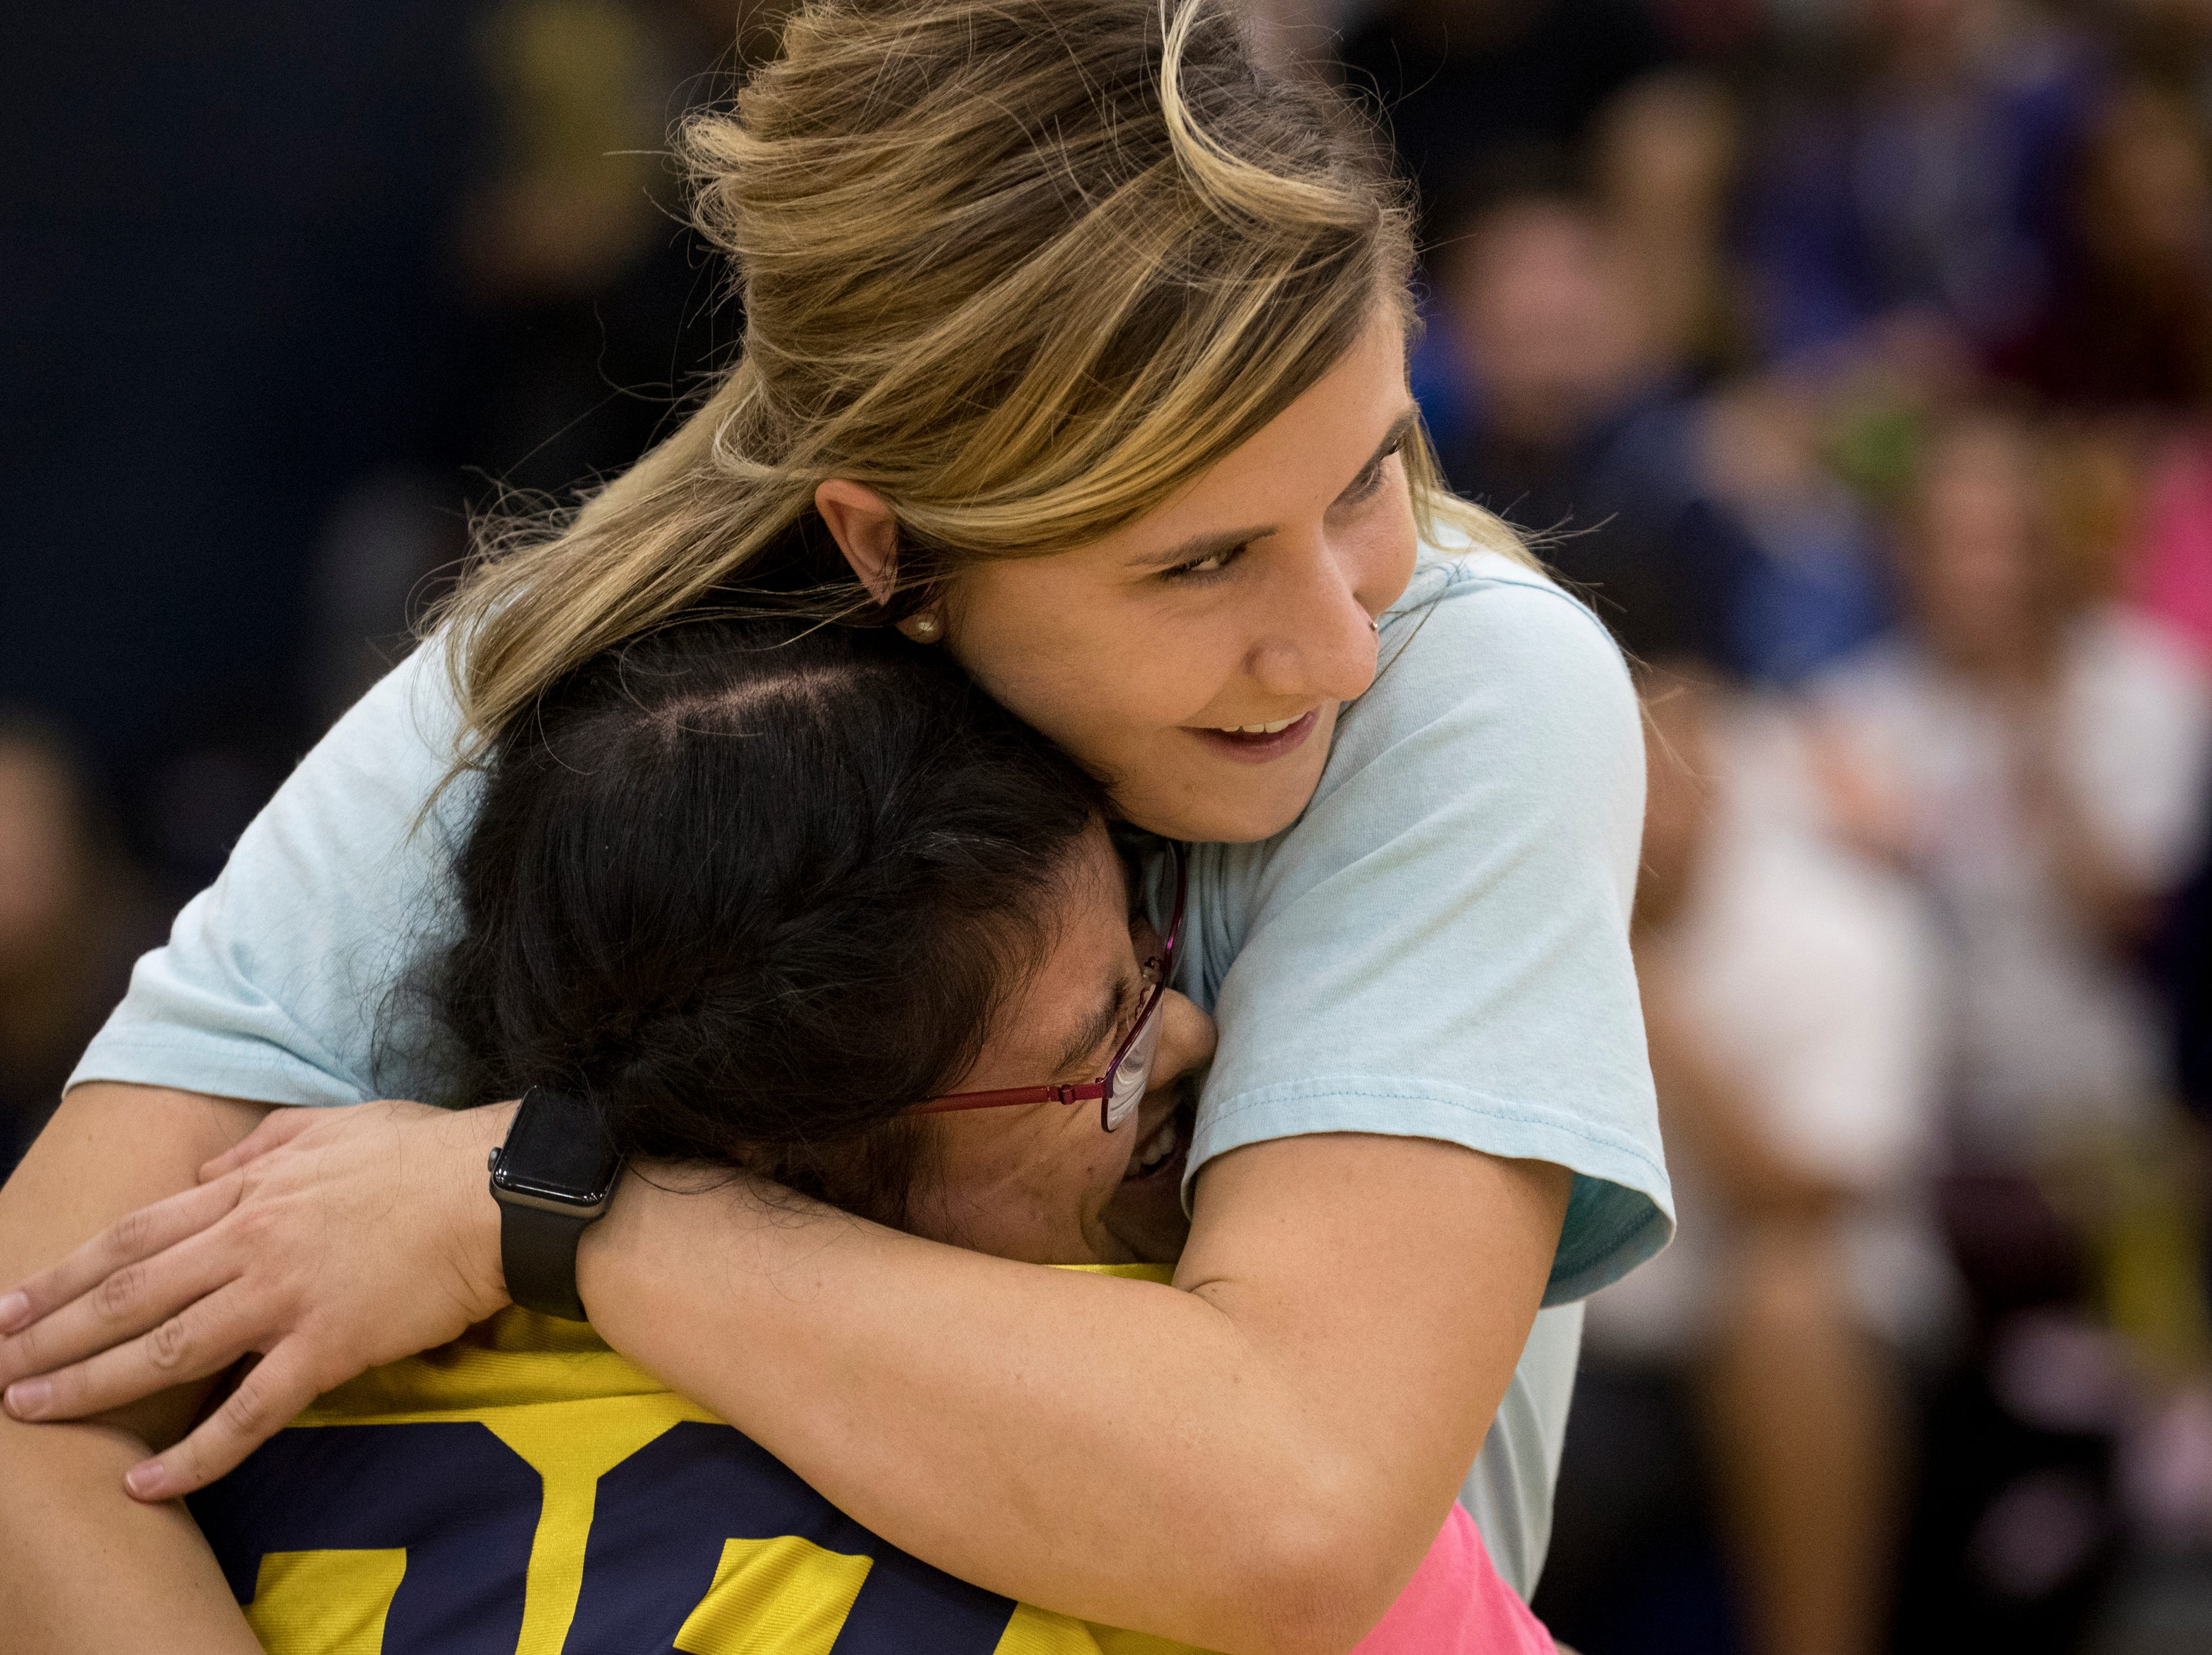 Jessica Avena (Class of 2012) is reunited with her Unified Pride partner, Halie Claiborne, during an assembly Nov. 8, 2018, at Raymond S. Kellis High School in Glendale.